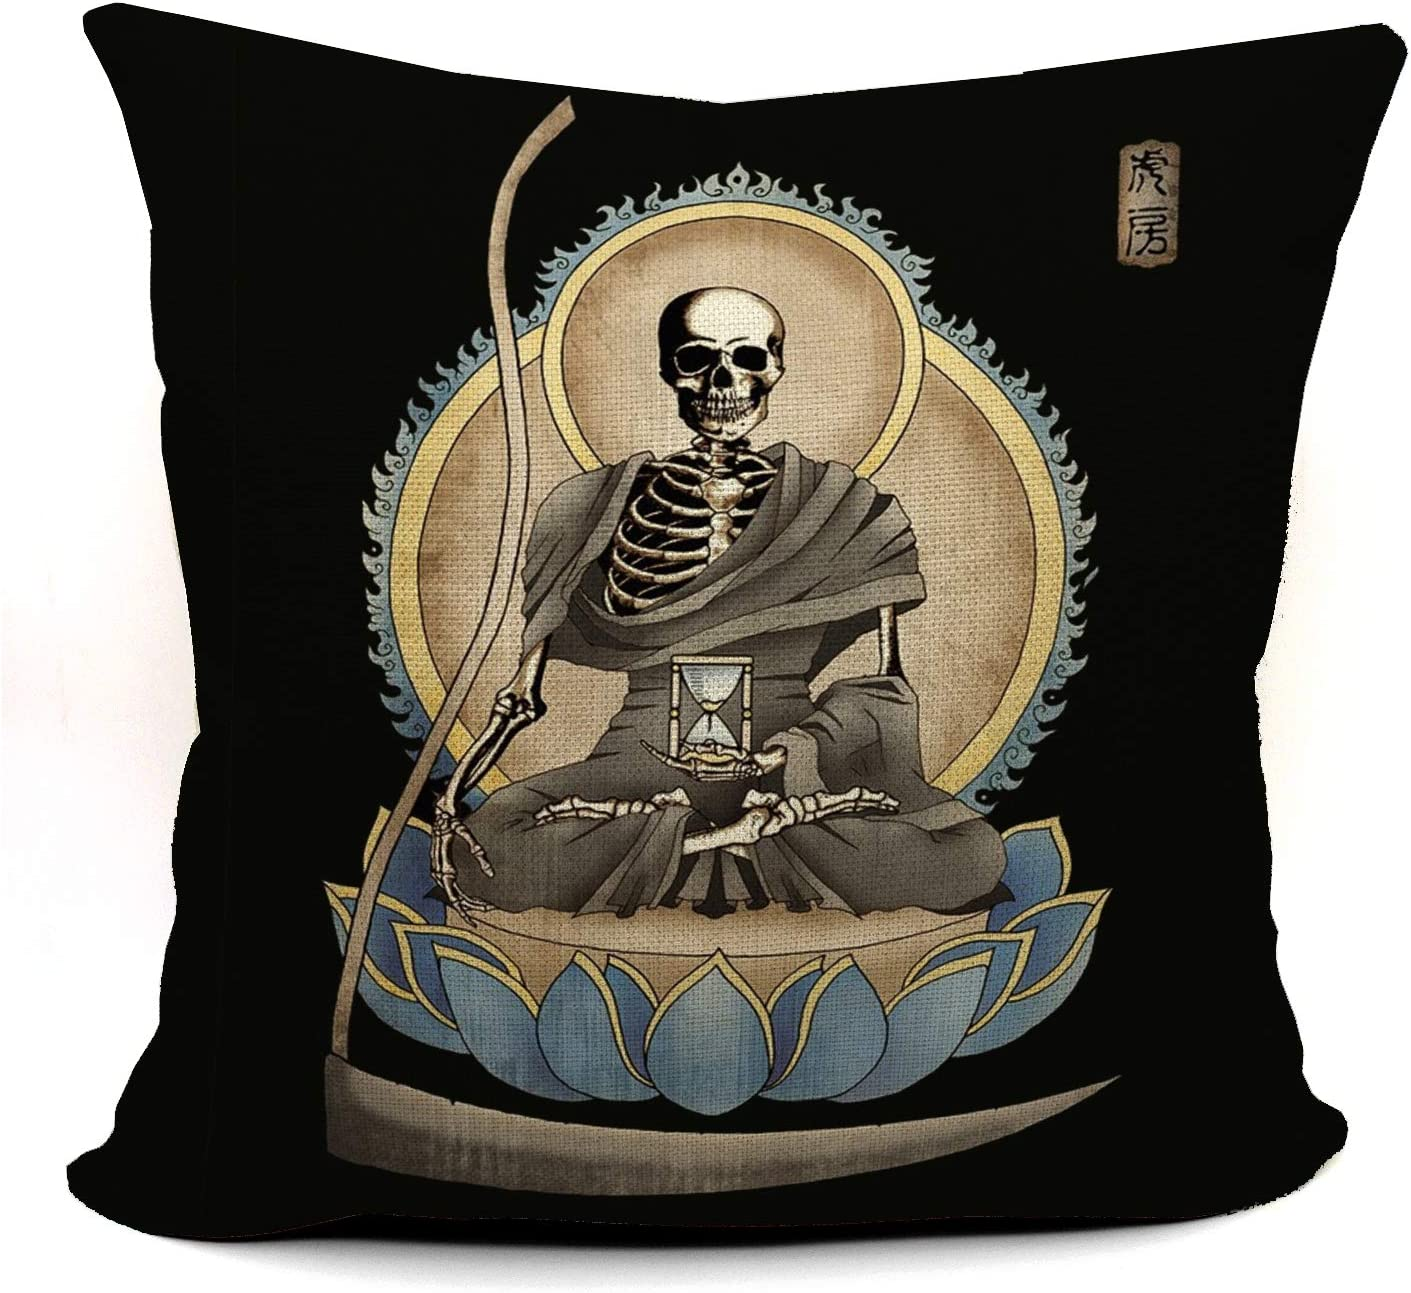 The Grim Reaper Memento Gothic Macabre Art Throw Pillow Case, Gift for Daughter, Sister, Wife, Meditation Corner Decor, Gothic Home Decor,18 x 18 Inch Linen Cushion Cover for Sofa Couch Bed